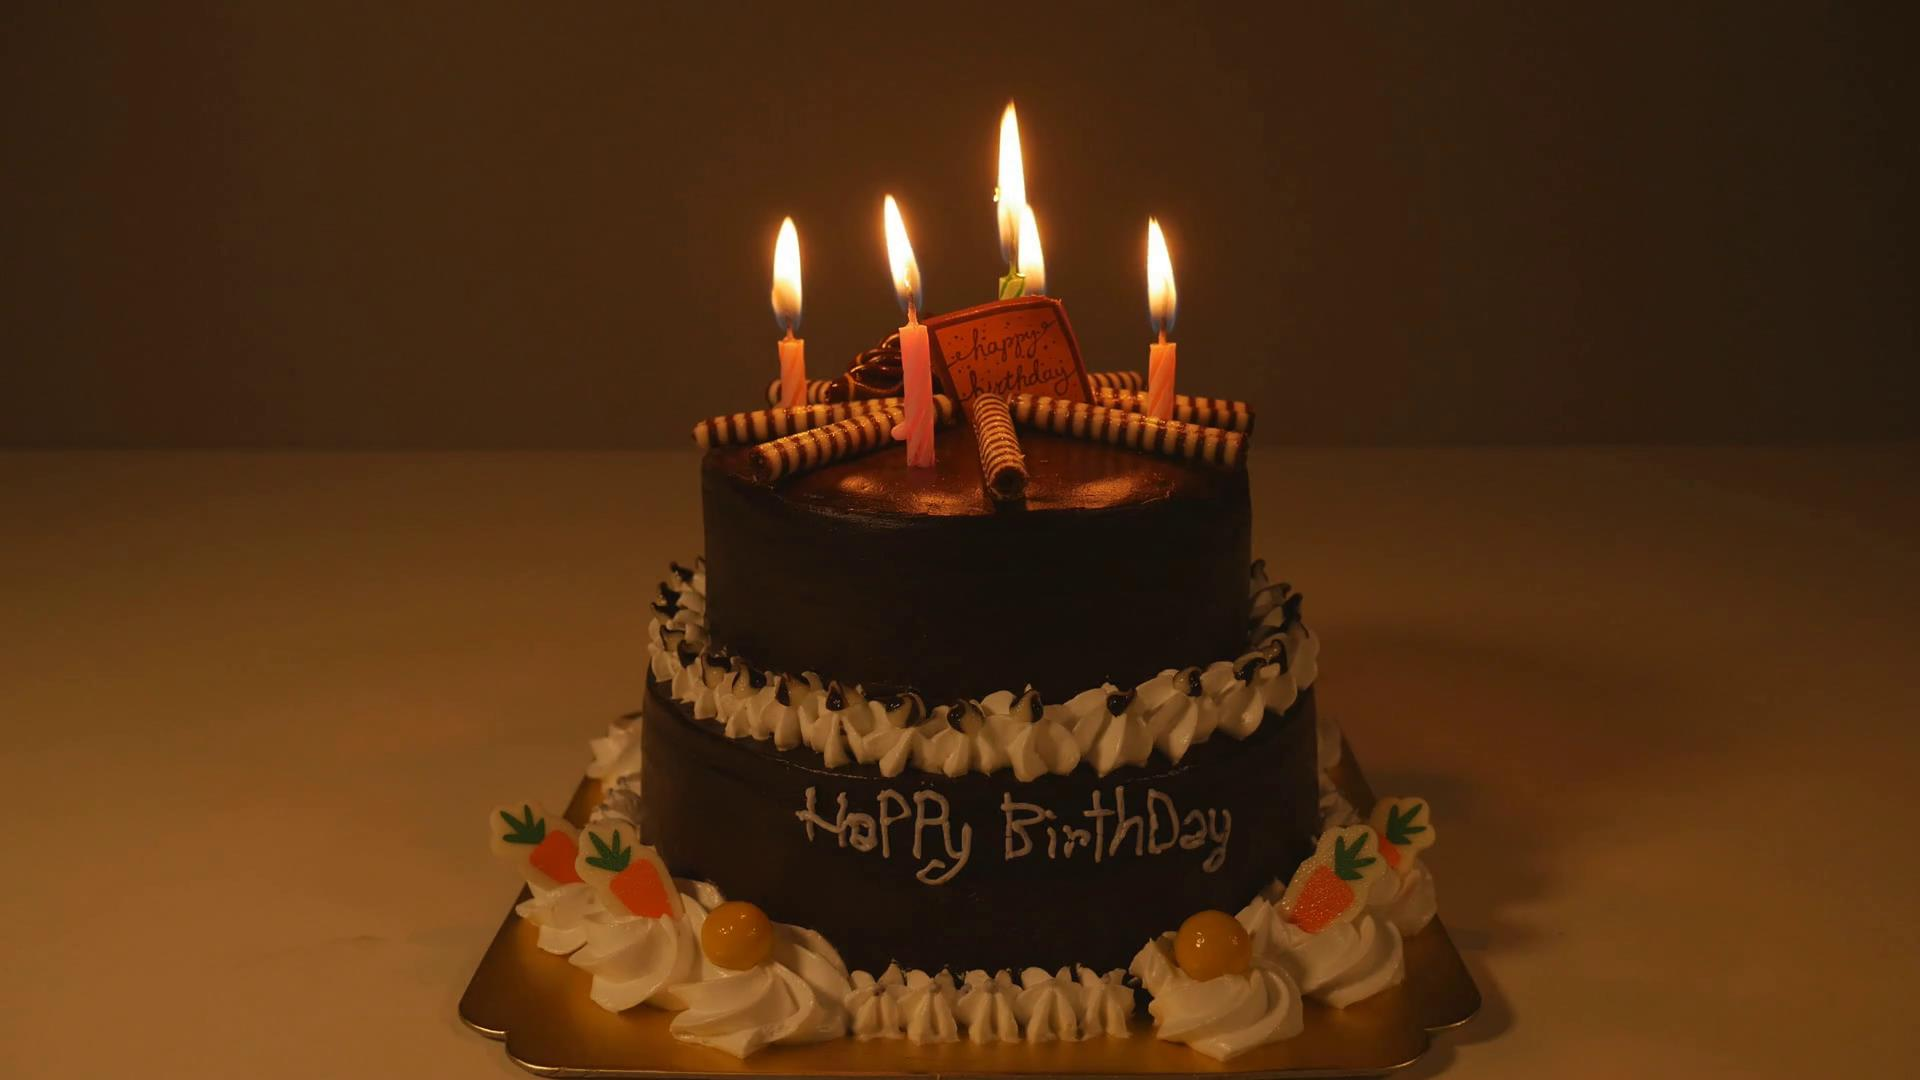 picture of birthday cake with burning candles ; videoblocks-4k-of-happy-birthday-cake-with-burning-spiral-candles_rnua3u2bz_thumbnail-full01